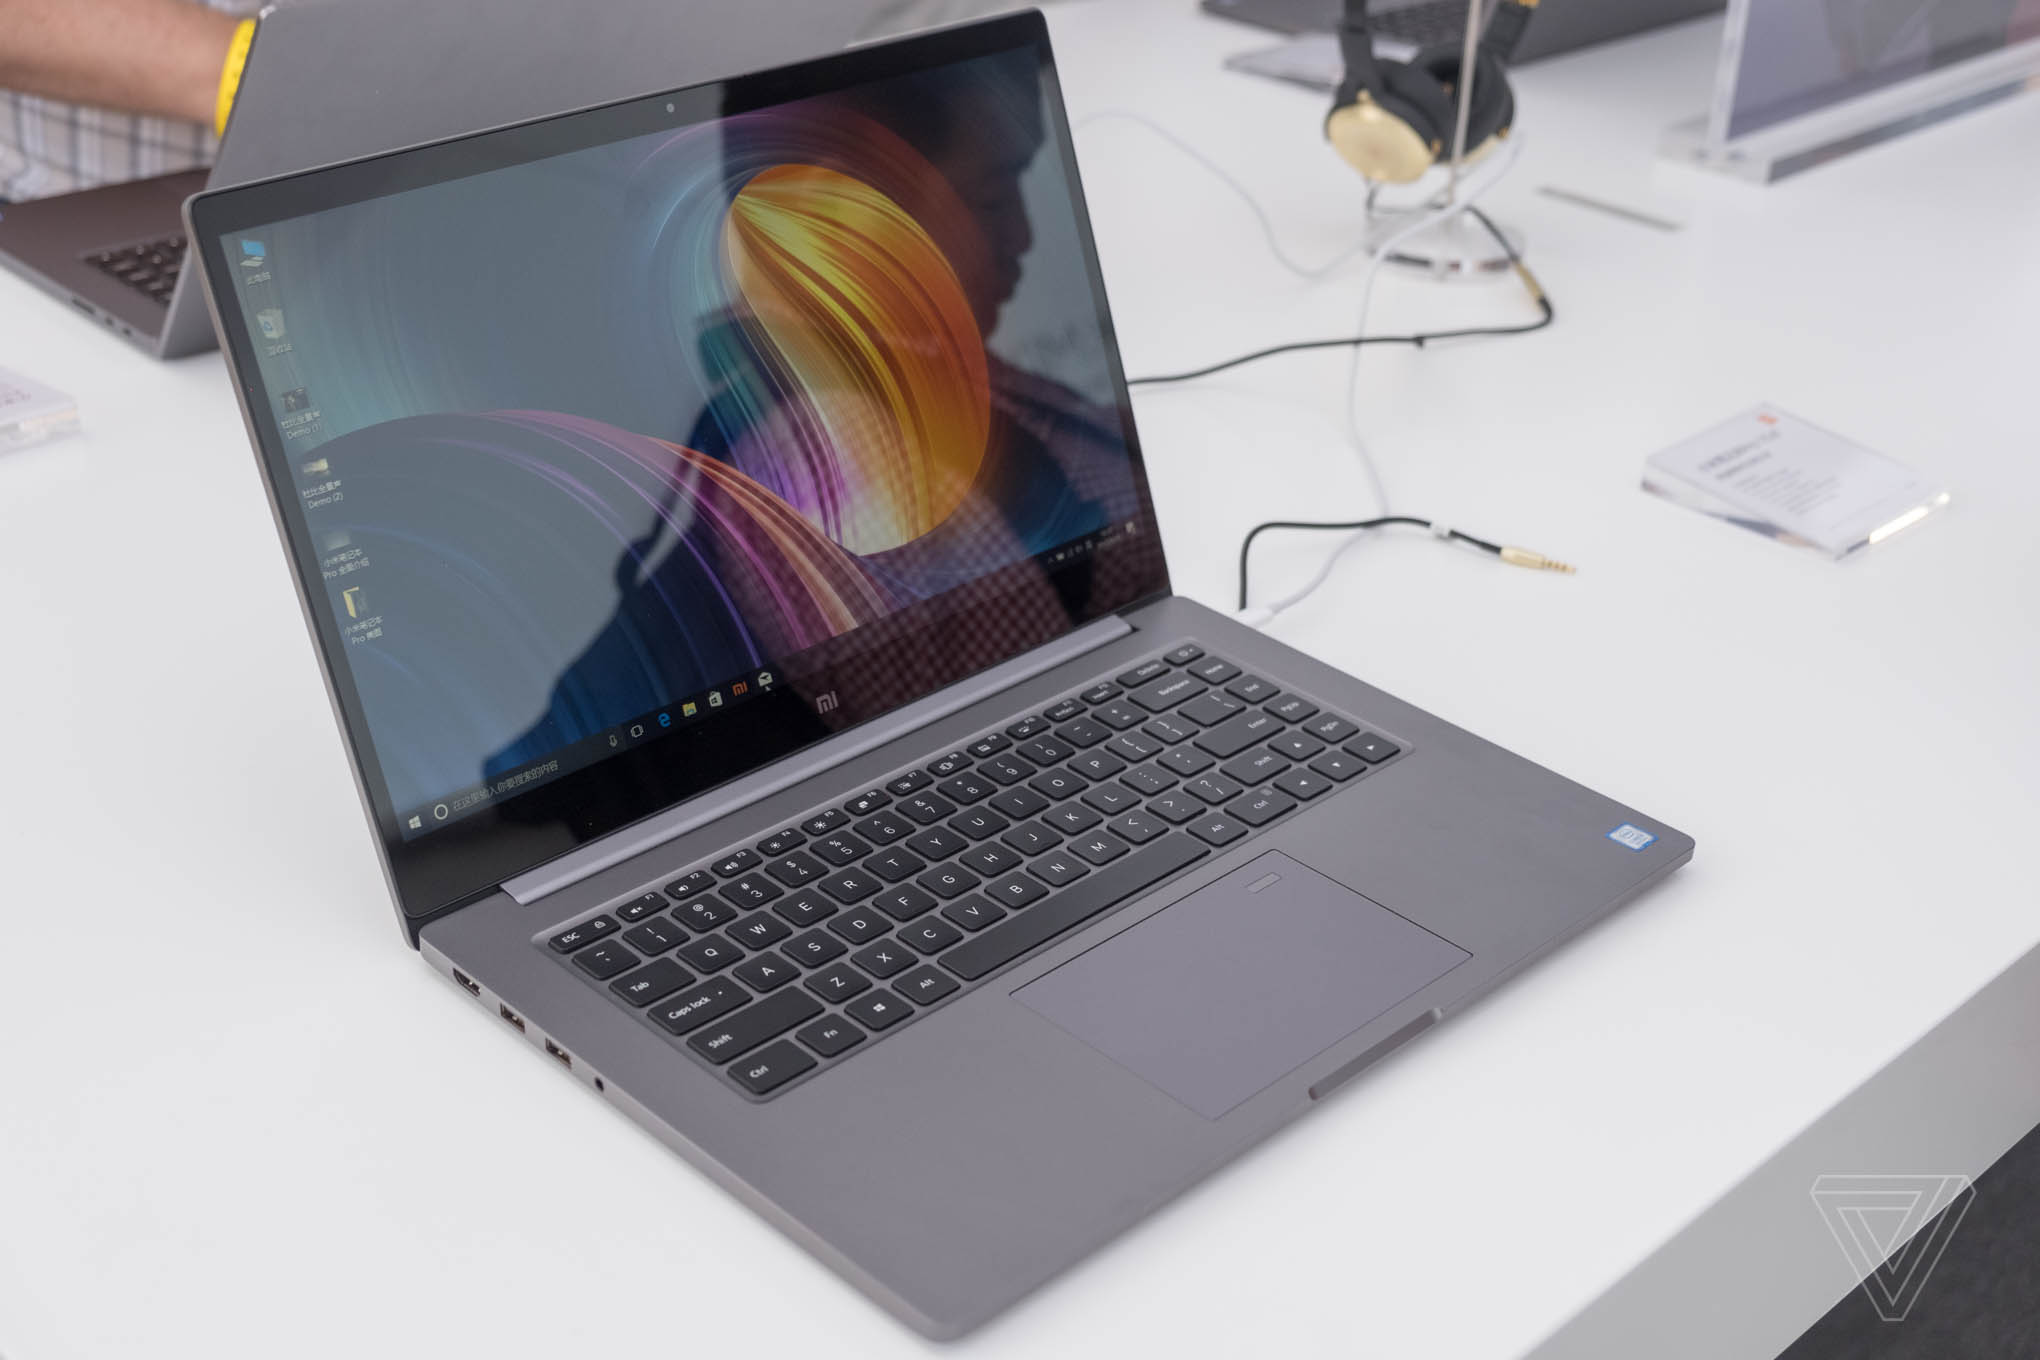 Xiaomi s Mi Notebook Pro has a lot going for it but one unfortunate flaw The Verge